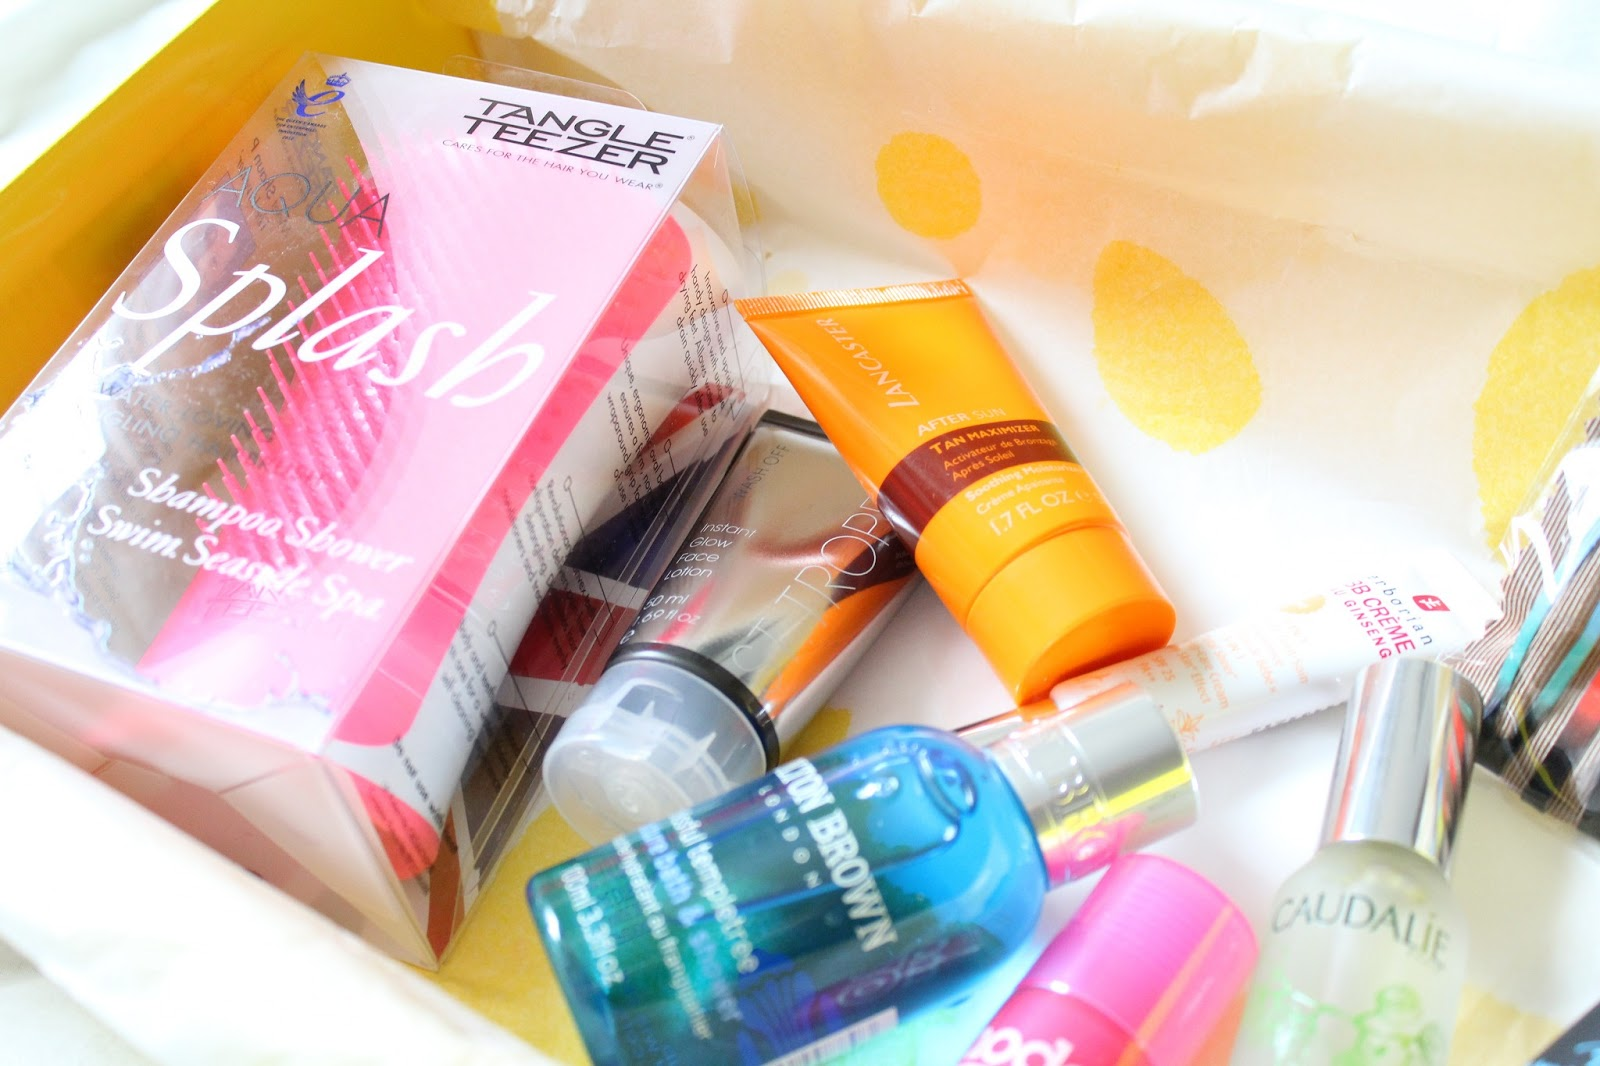 Selfridges Summer Beauty Box